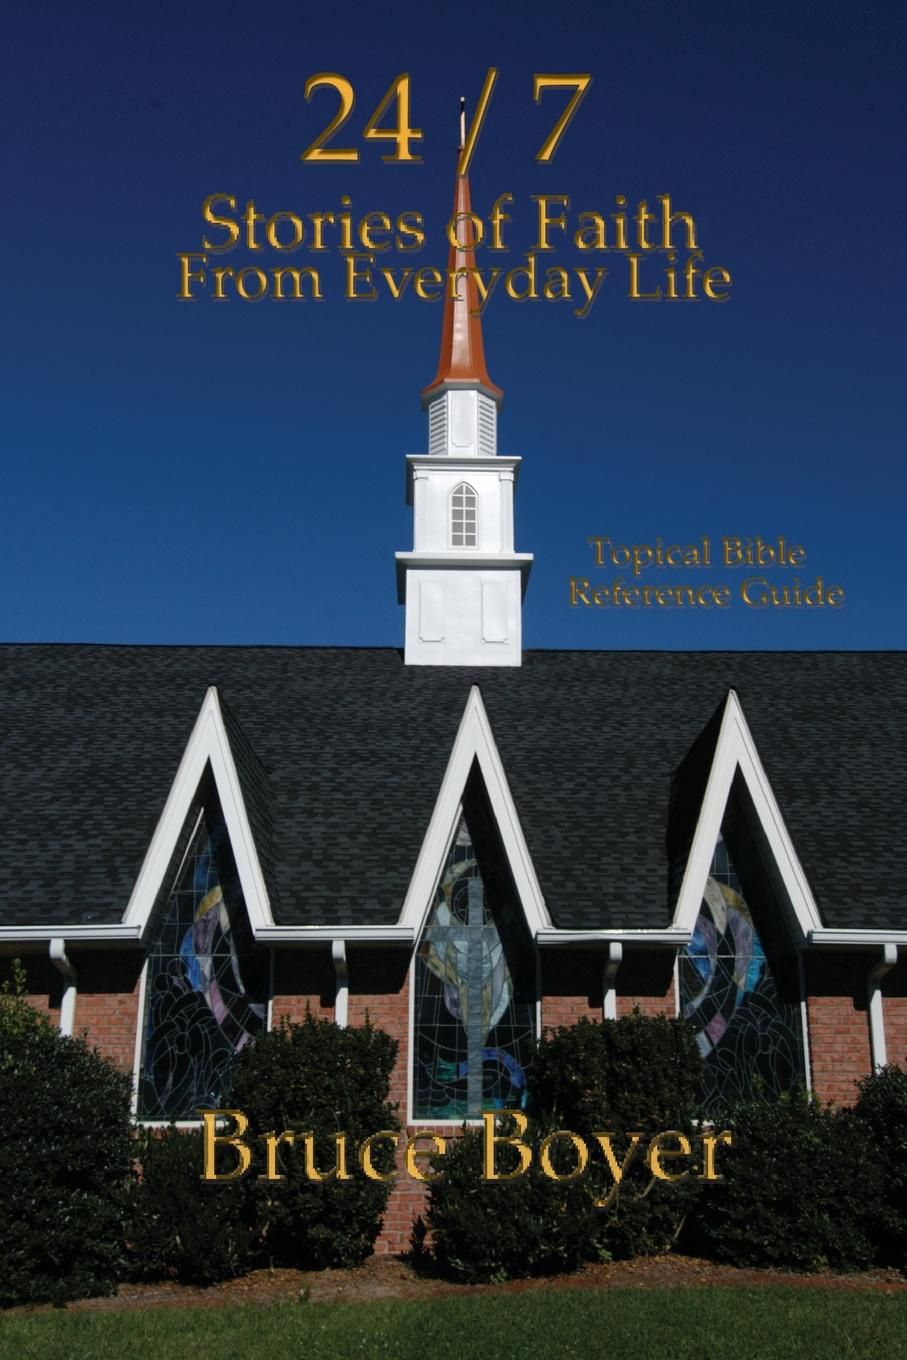 Bruce Boyer 24/7 Stories of Faith From Everyday Life lieberman bruce s prehistoric life evolution and the fossil record